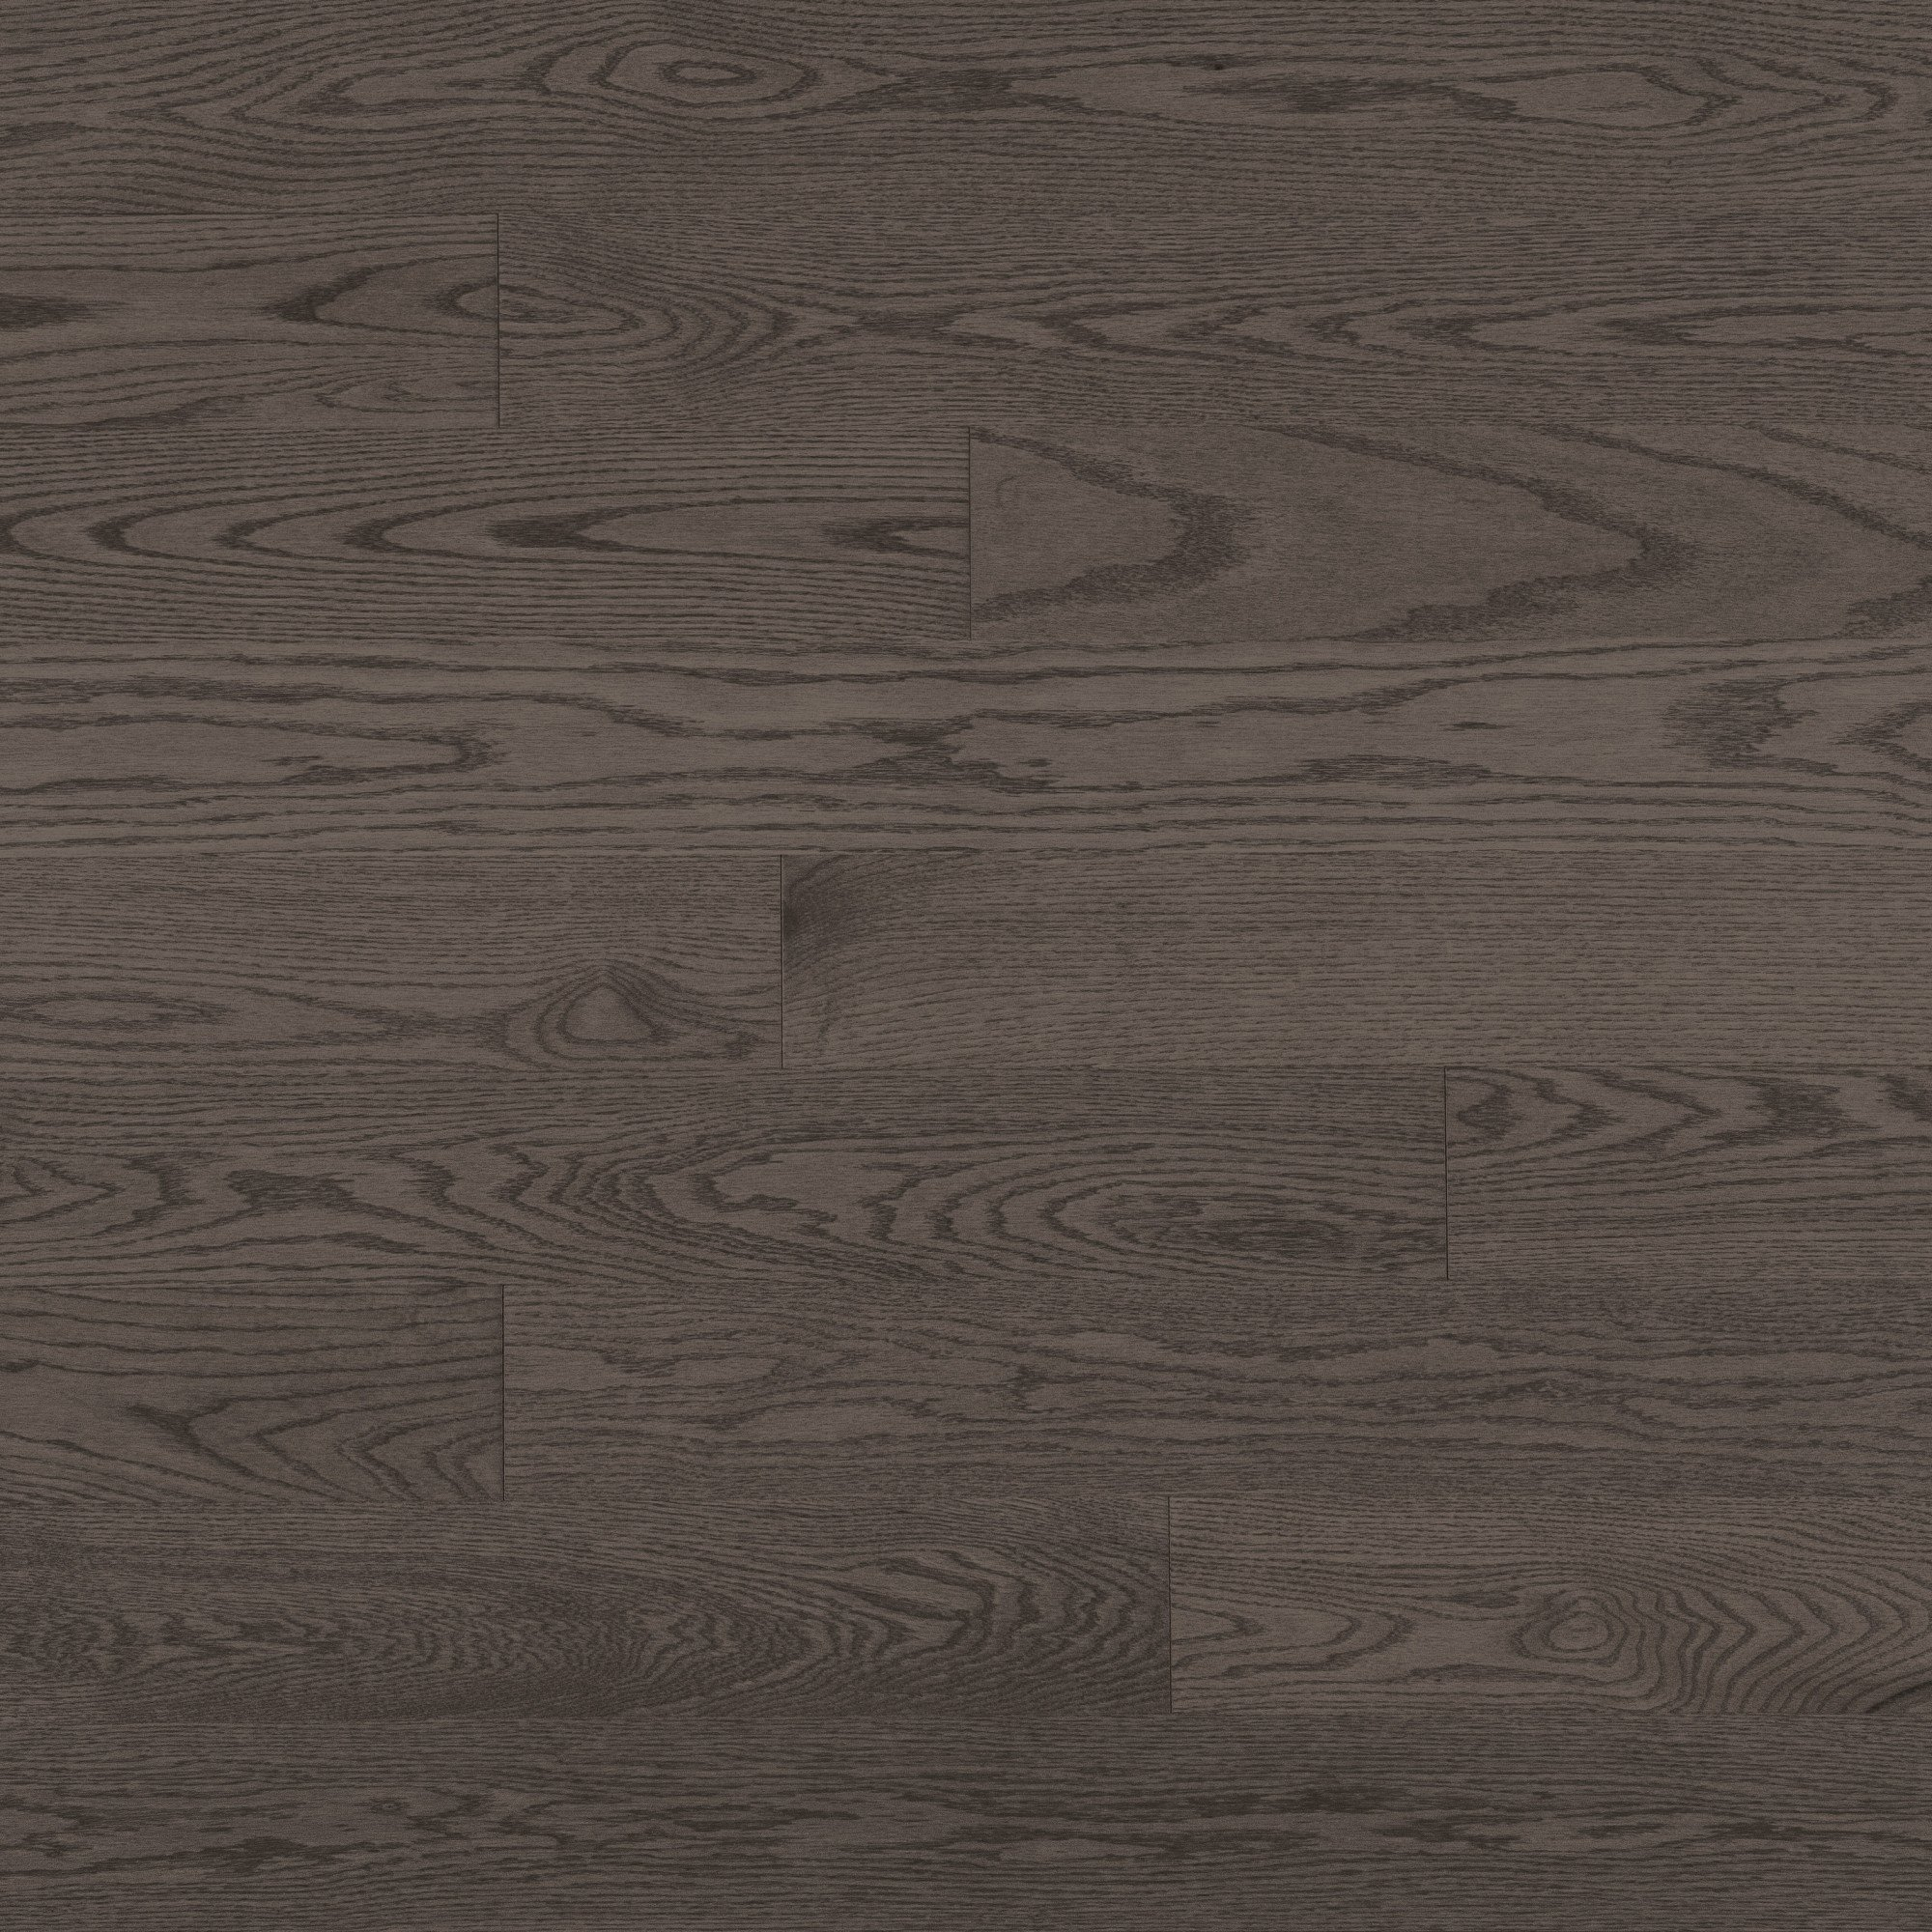 Chêne rouge Charcoal Exclusive Lisse - Image plancher